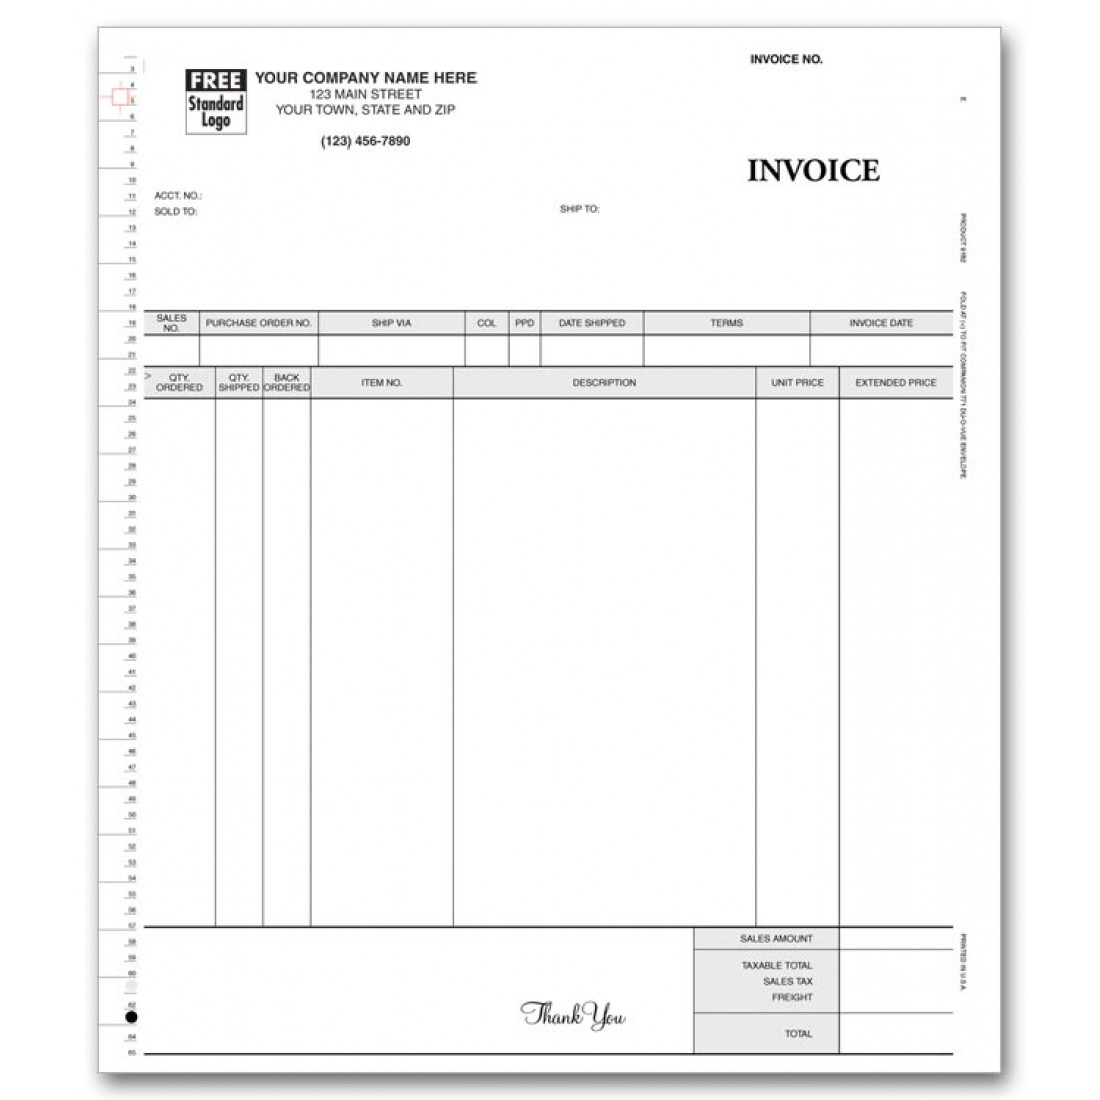 General Continuous Invoice, 3-Part